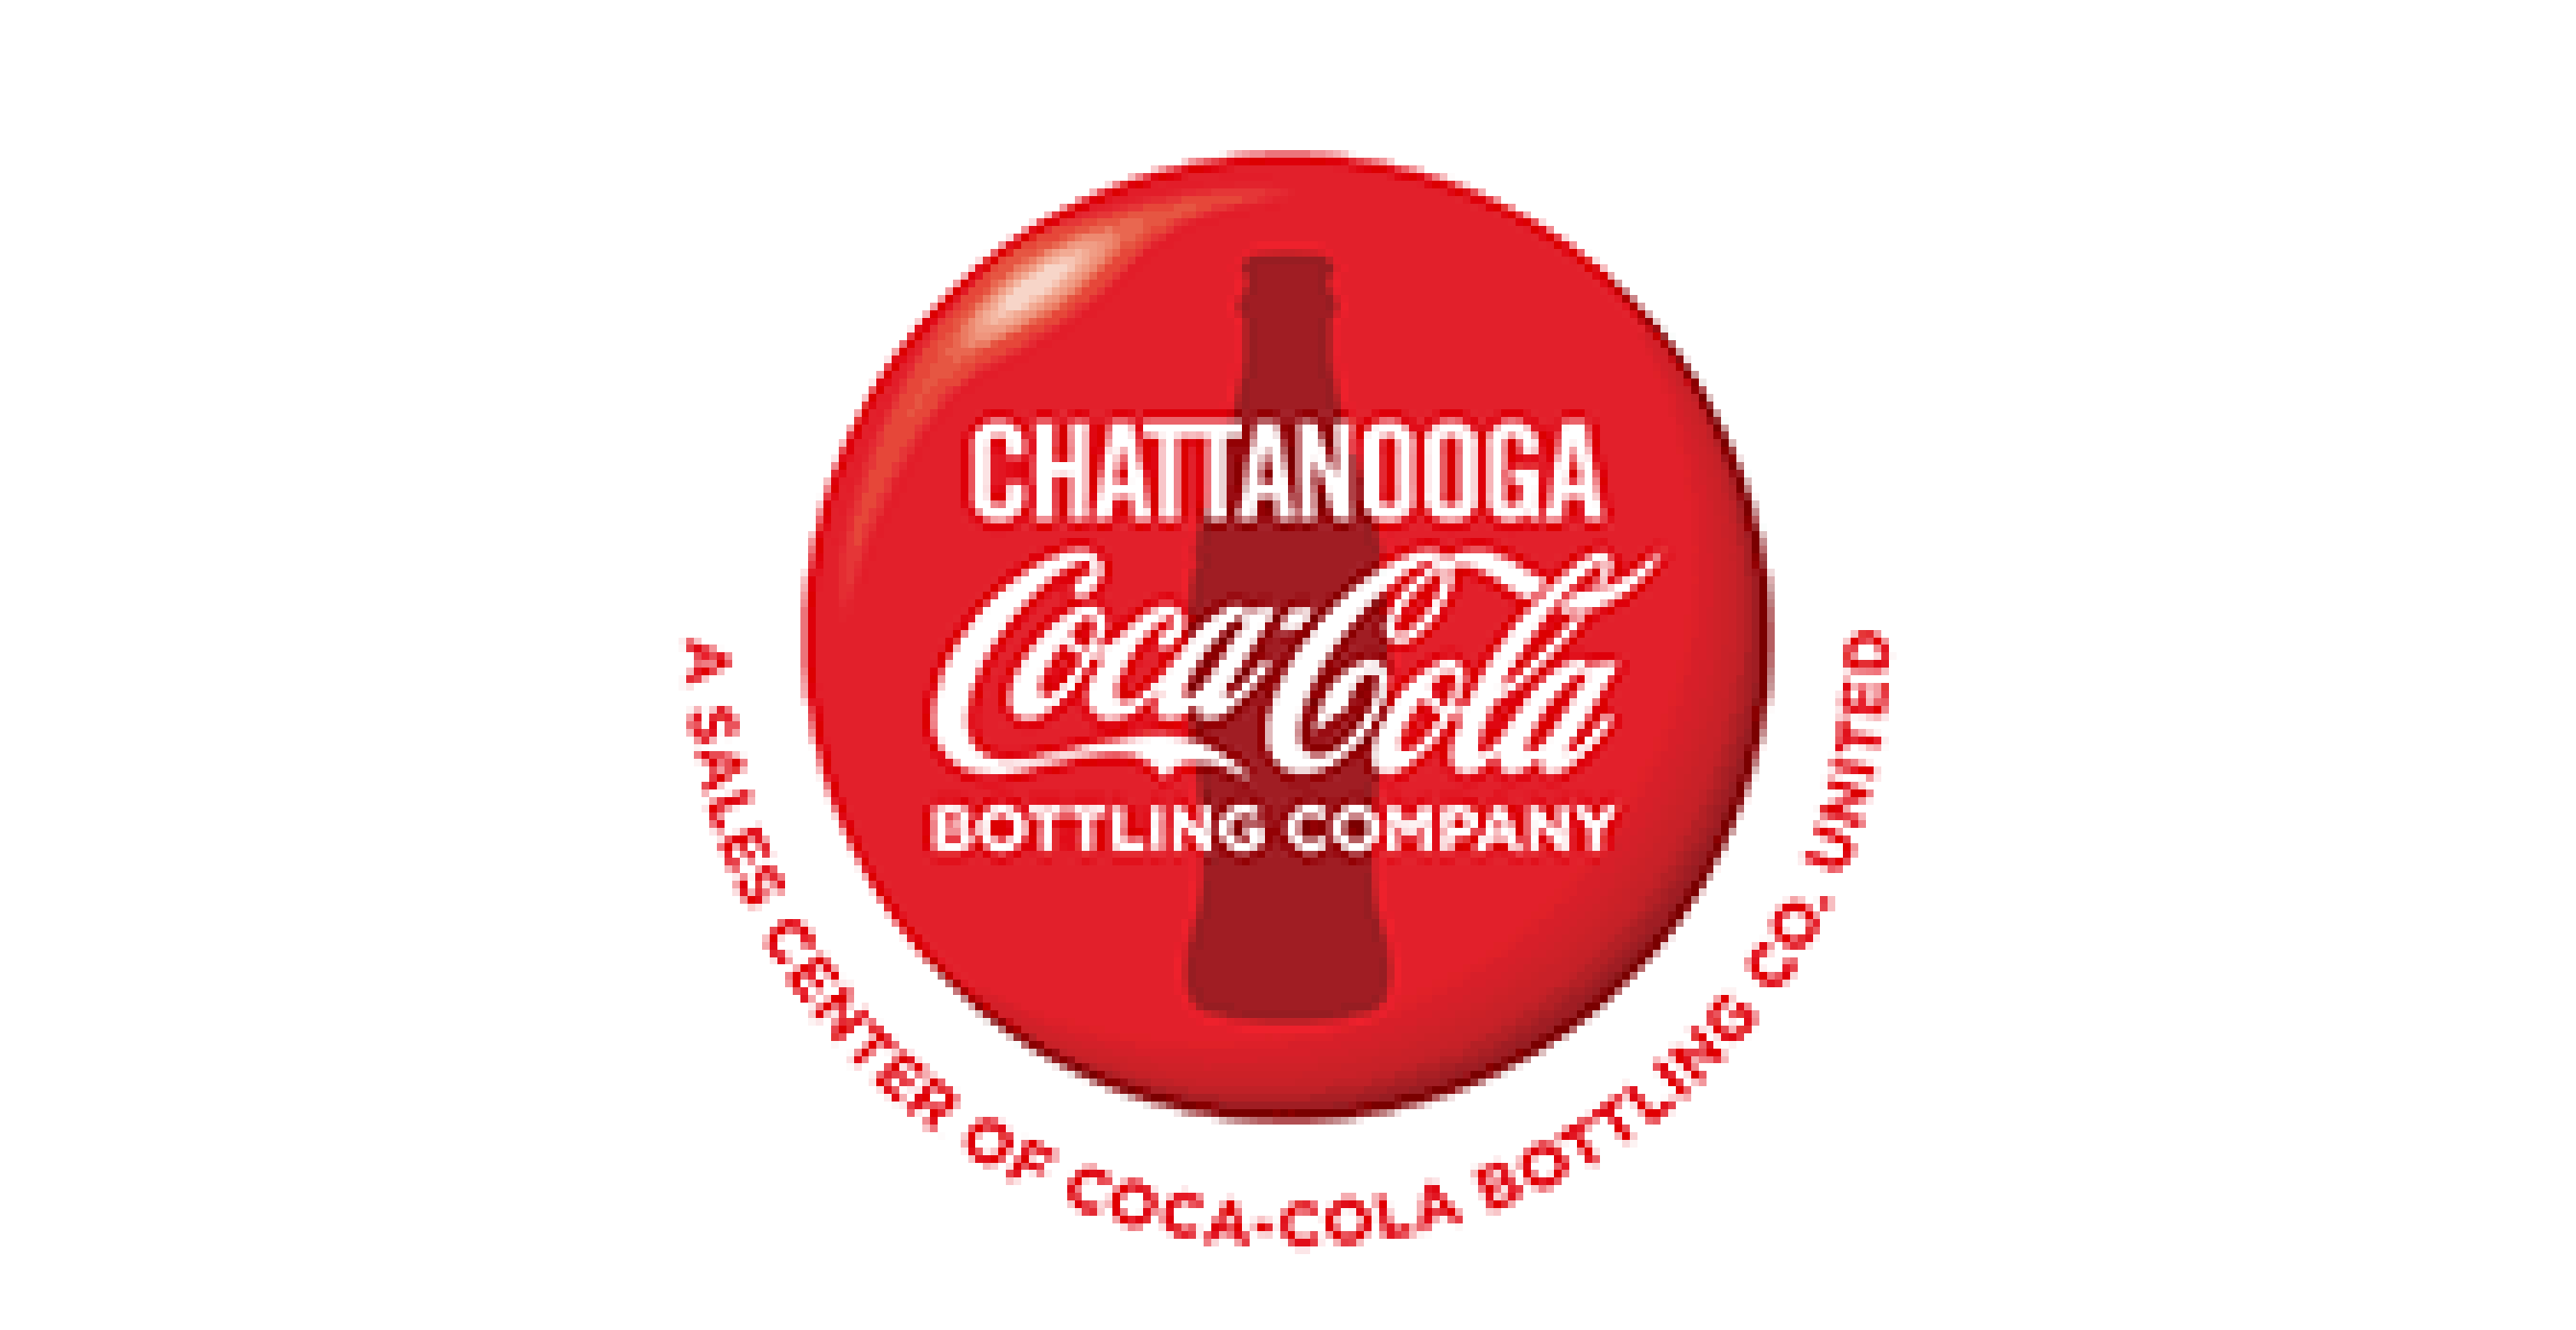 Chattanooga Coca-Cola Bottling Company